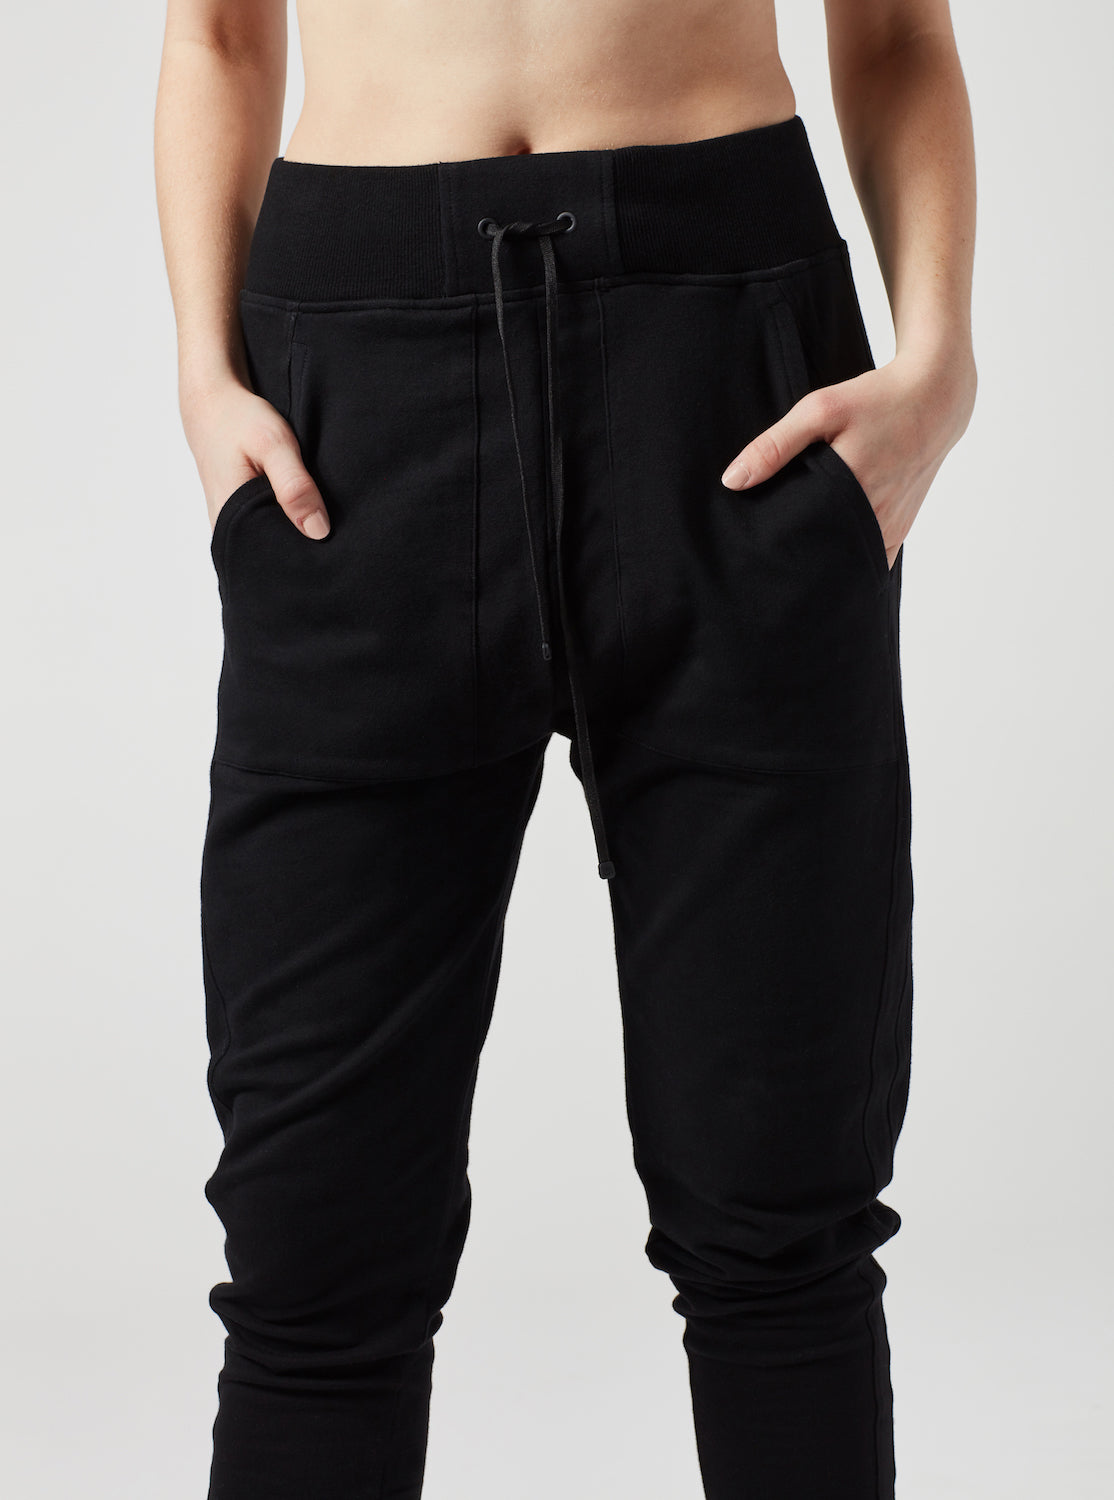 FUJI DROP CROTCH PANT  |  30% off BYE SUMMER SALE